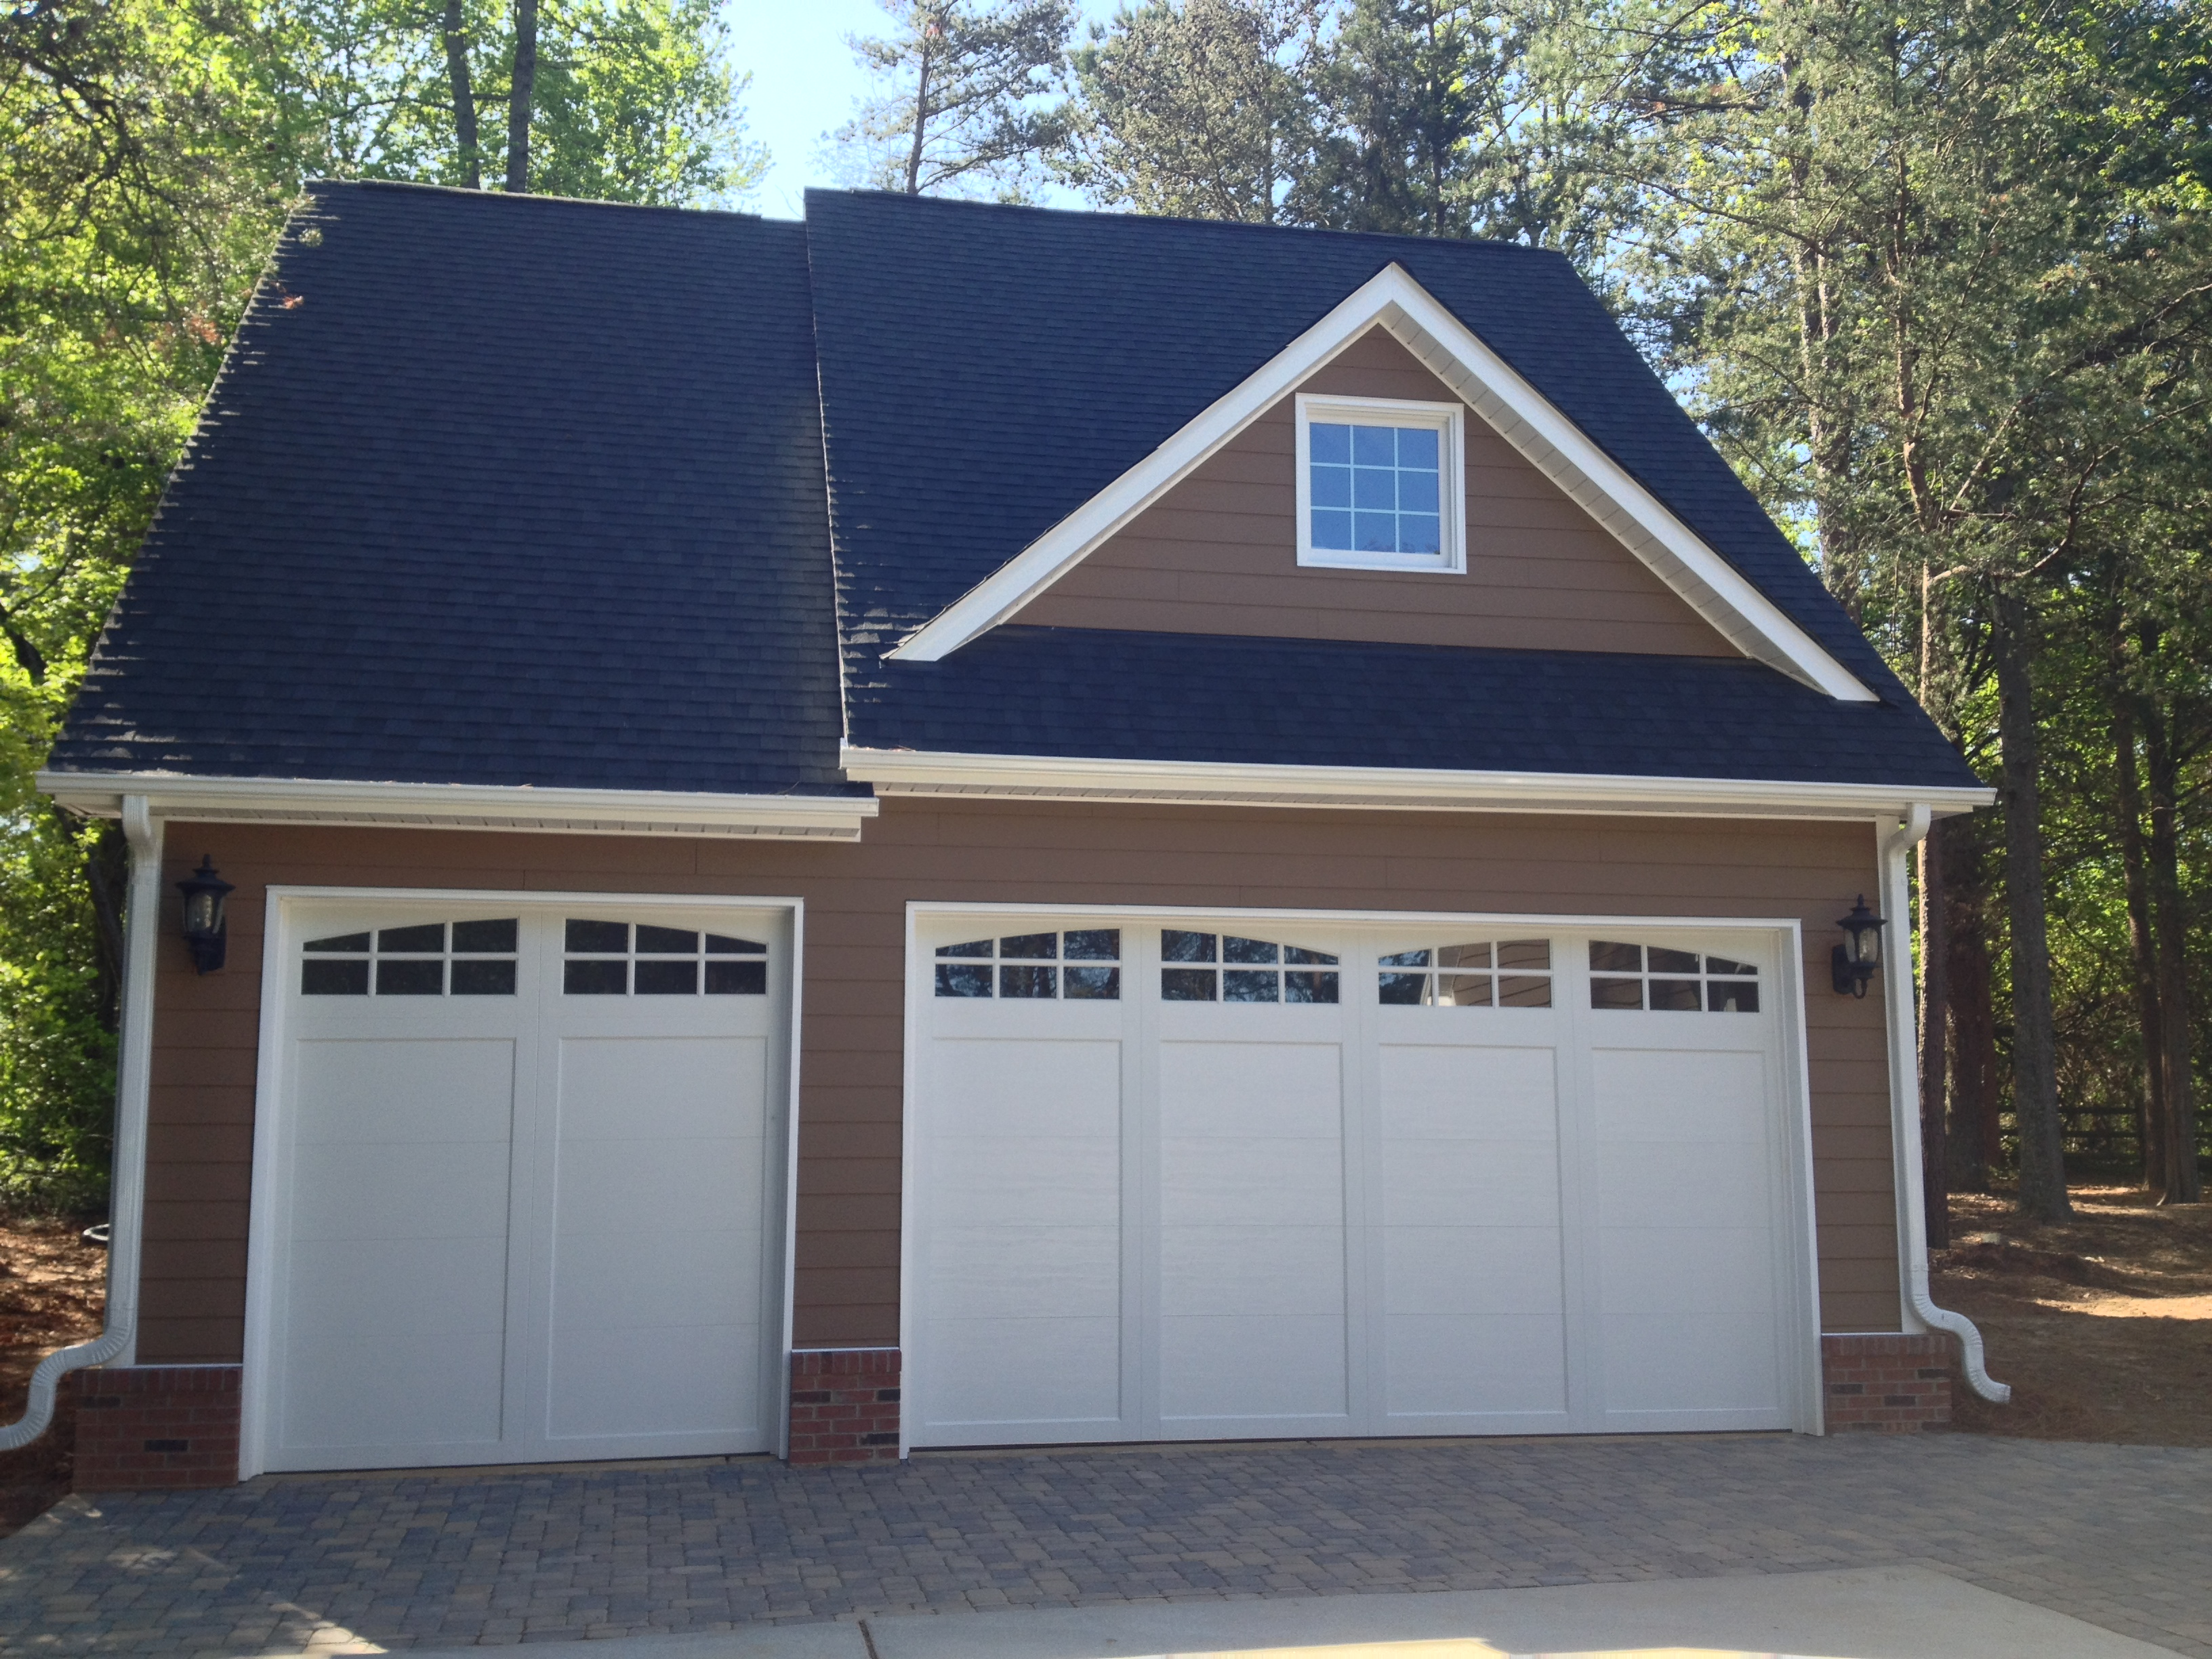 How wide is a two car garage door 3 car detached garage for How wide is a garage door